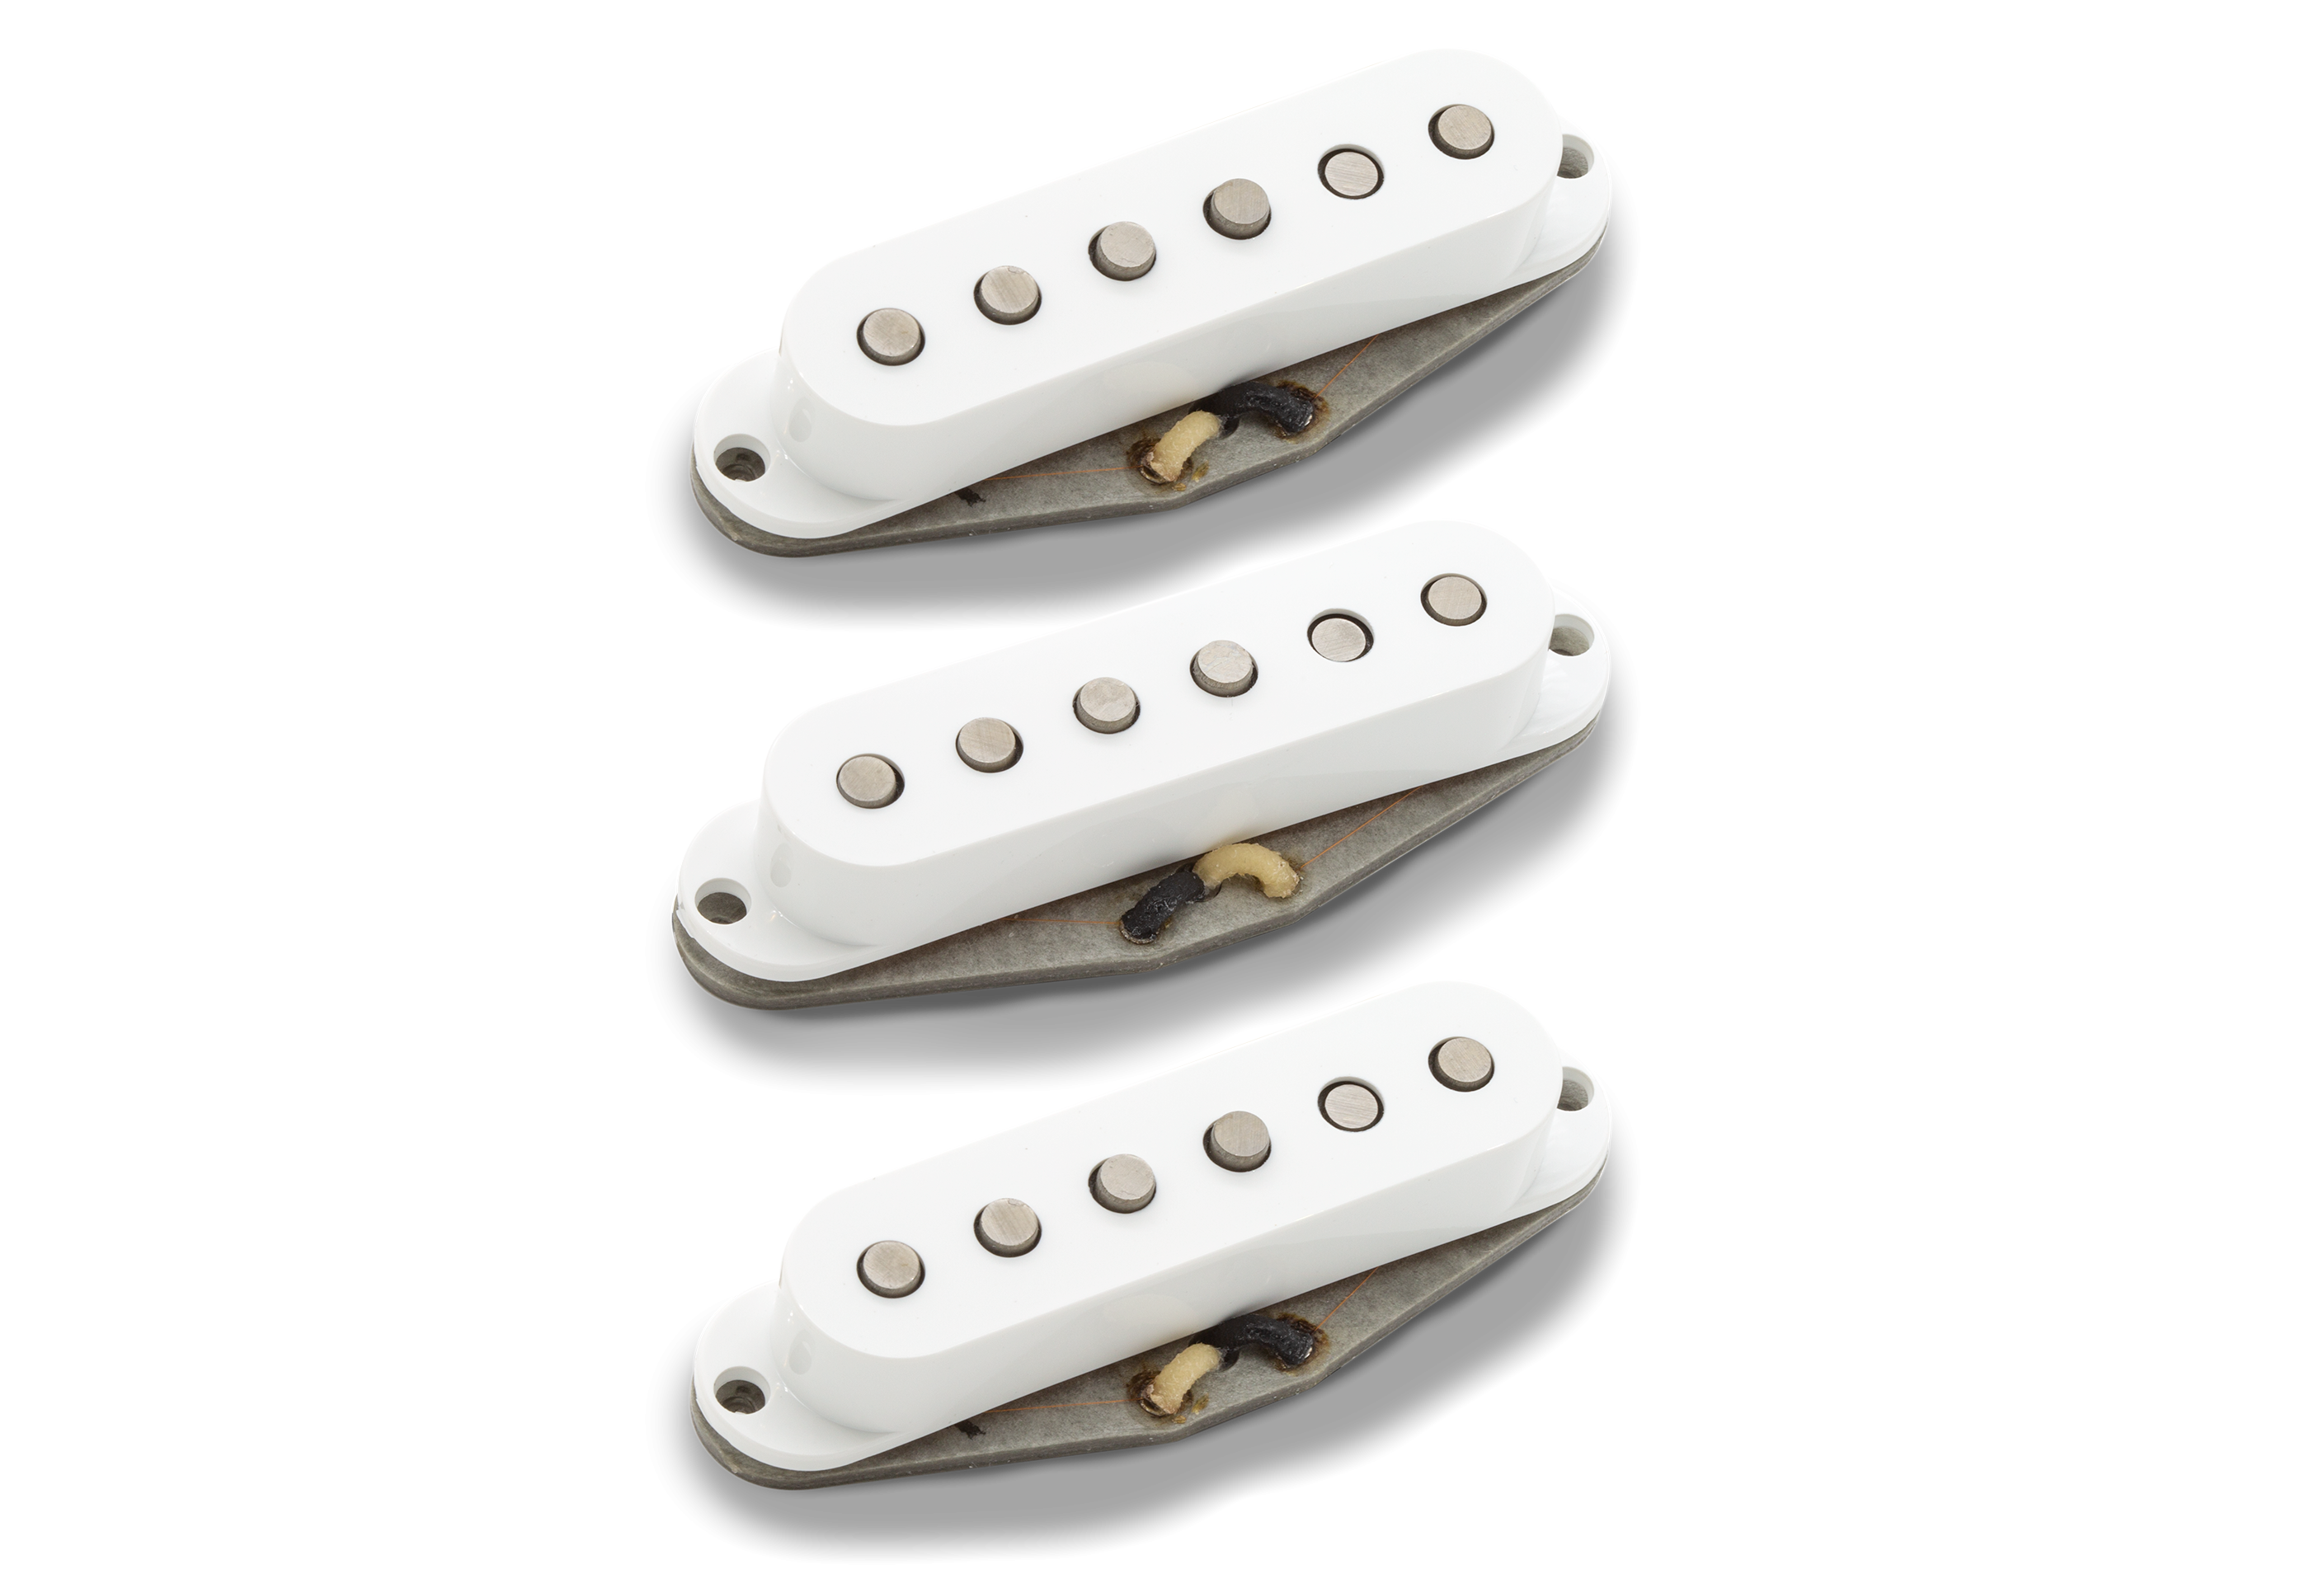 Seymour Duncan Antiquity II Retrospec'd Surfer Strat - Set